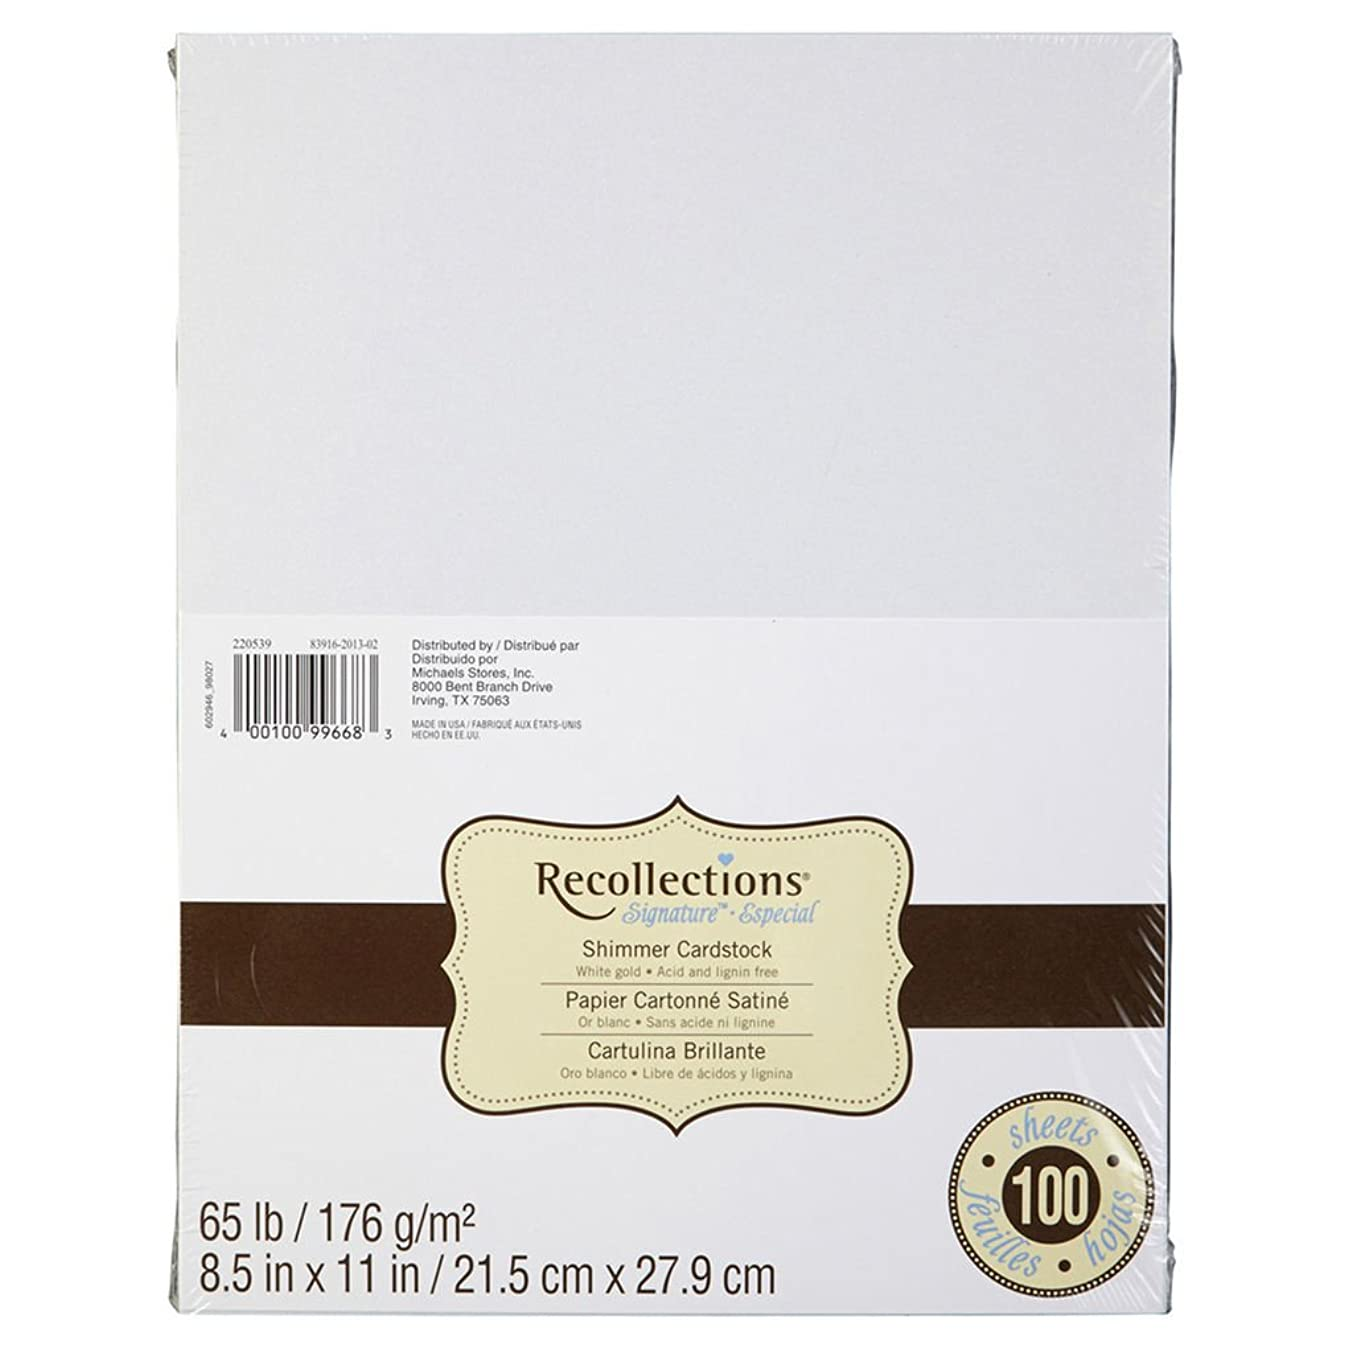 Recollections Shimmer White Gold Cardstock Paper, 8.5